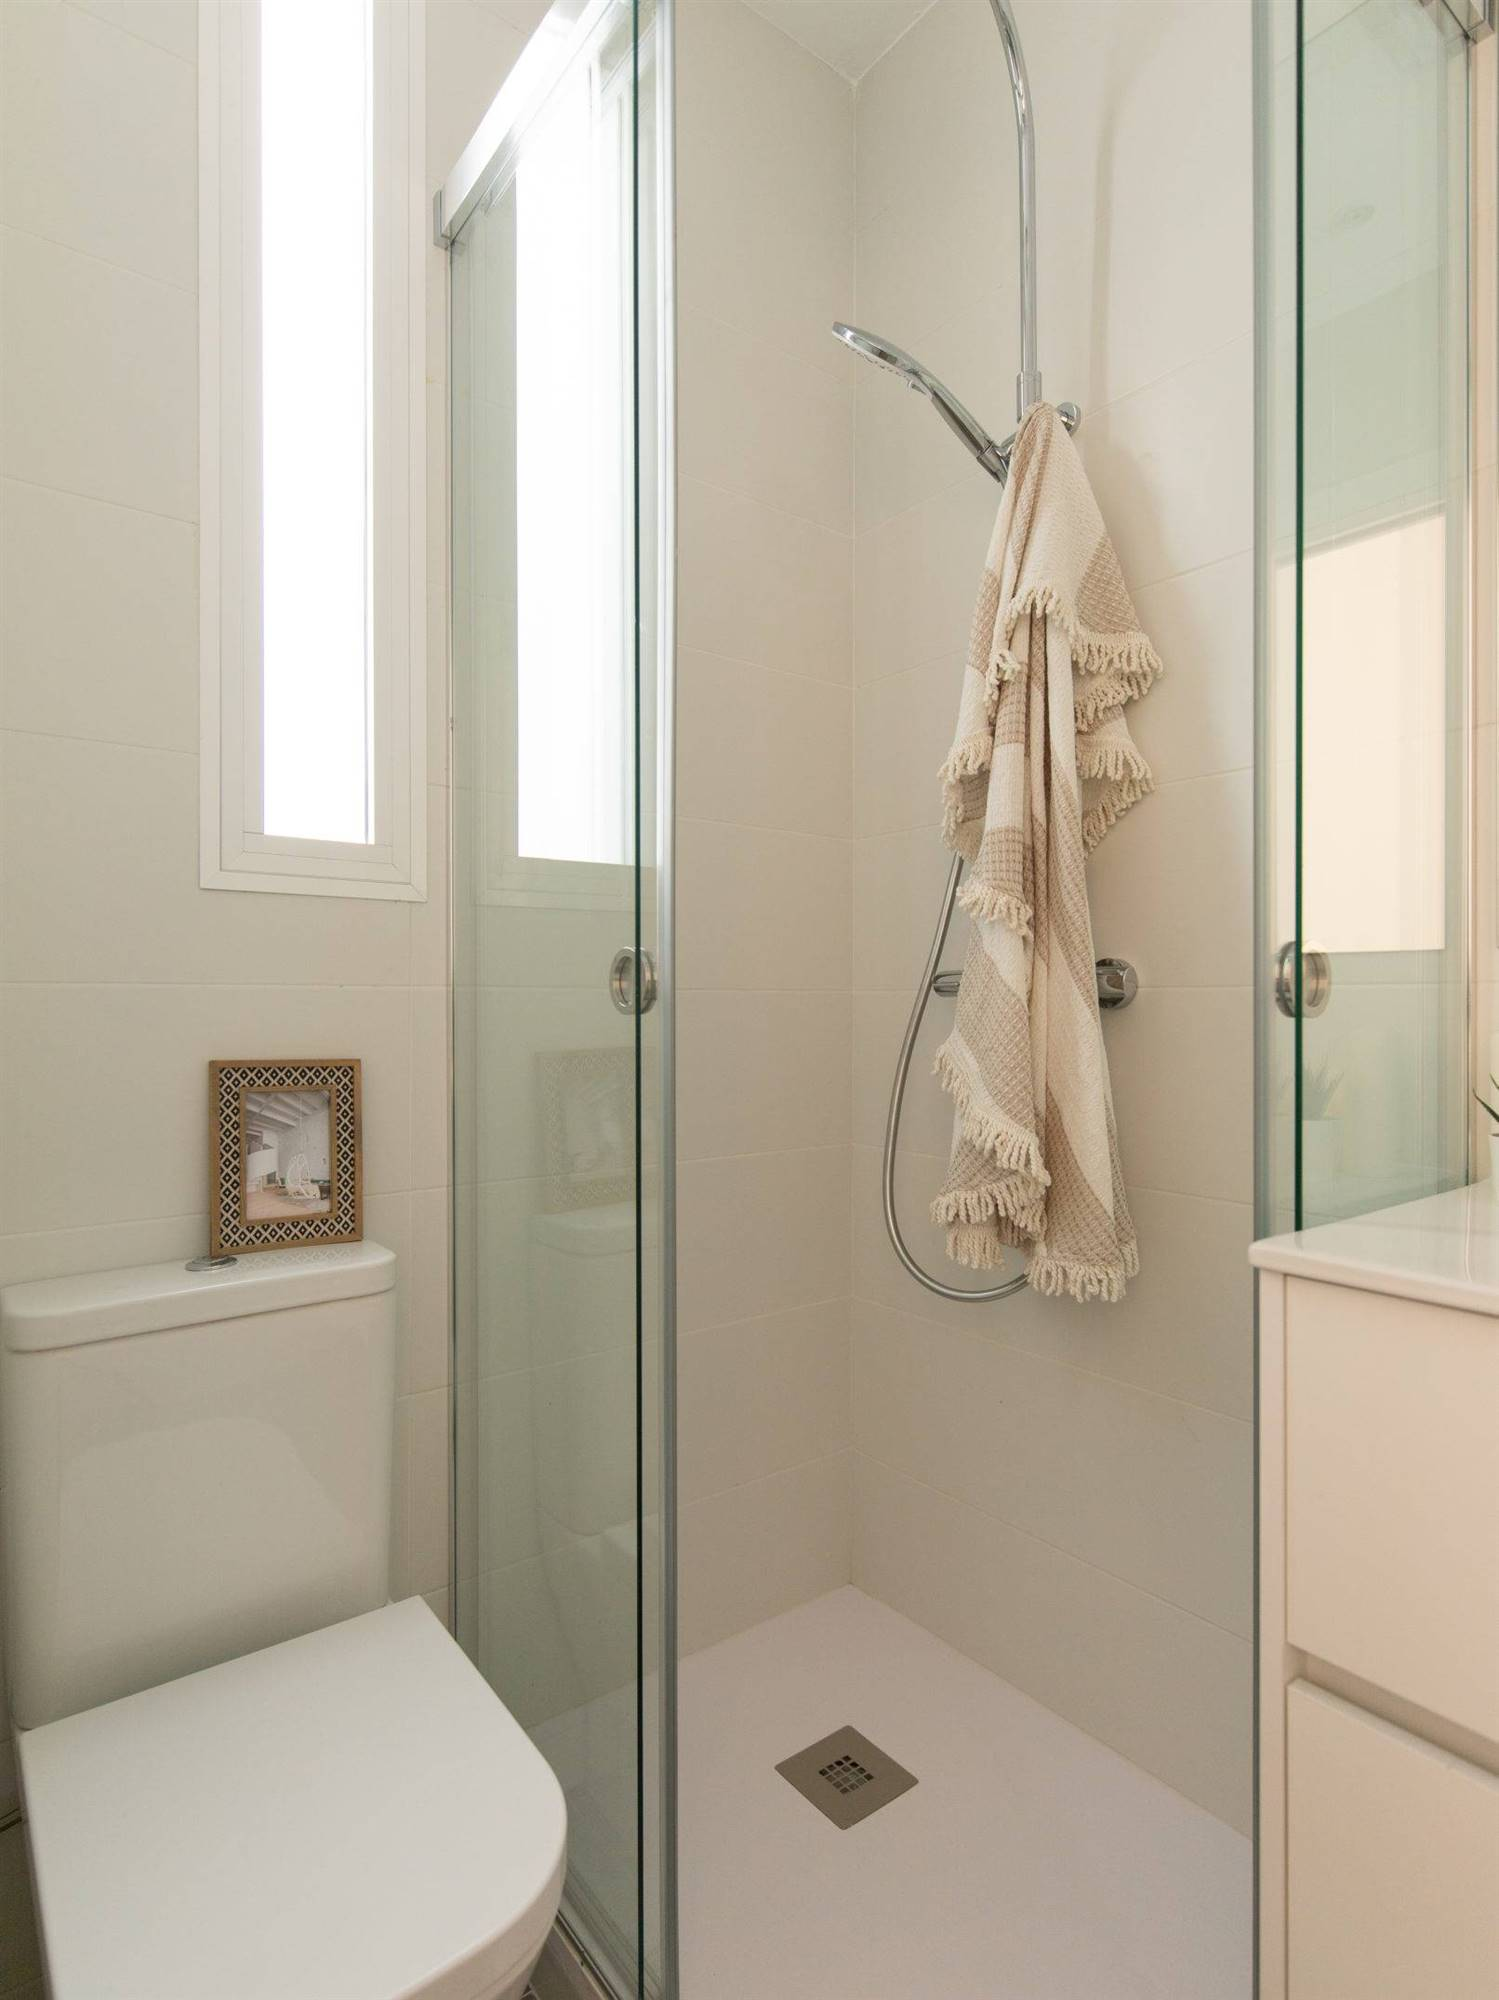 The Home Hunter. Un baño mini en blanco